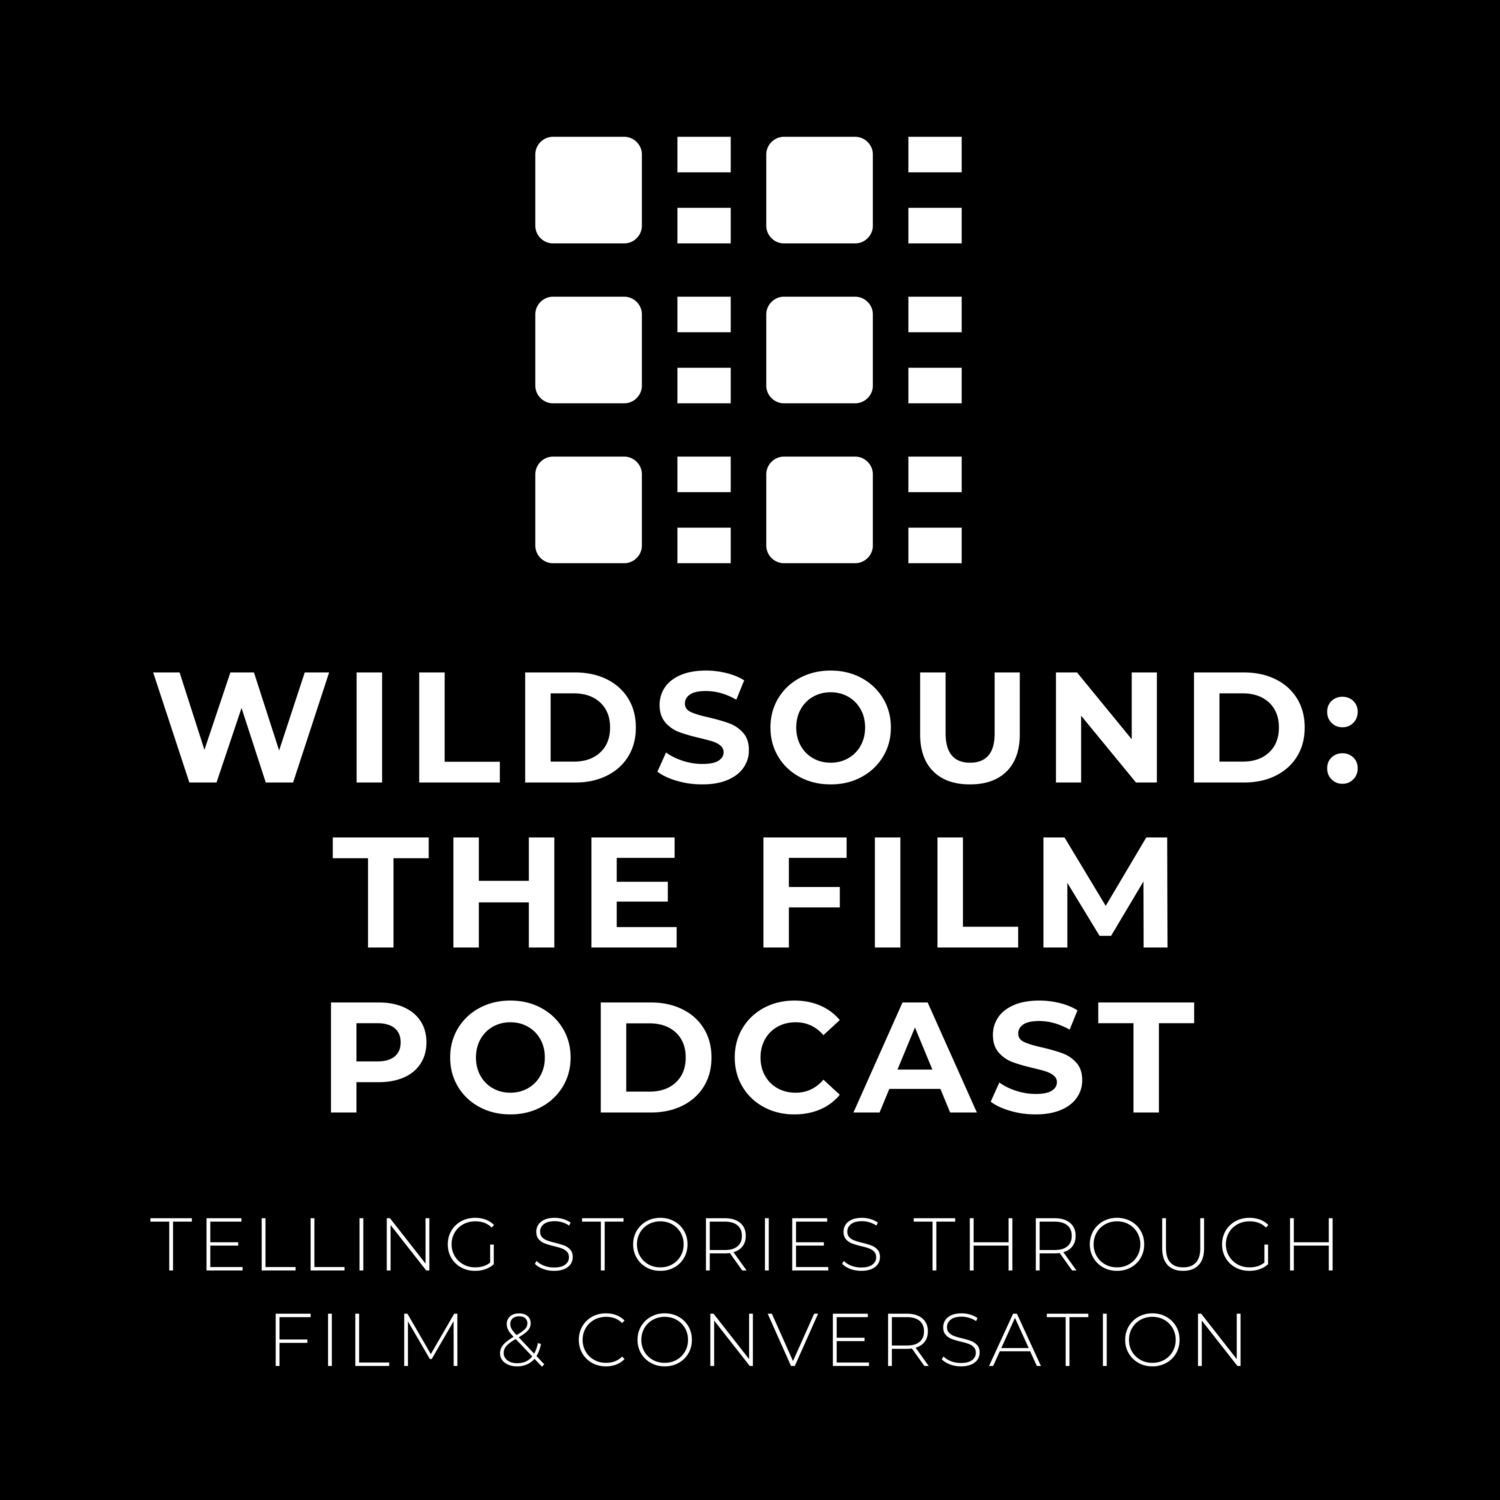 WILDsound Podcast